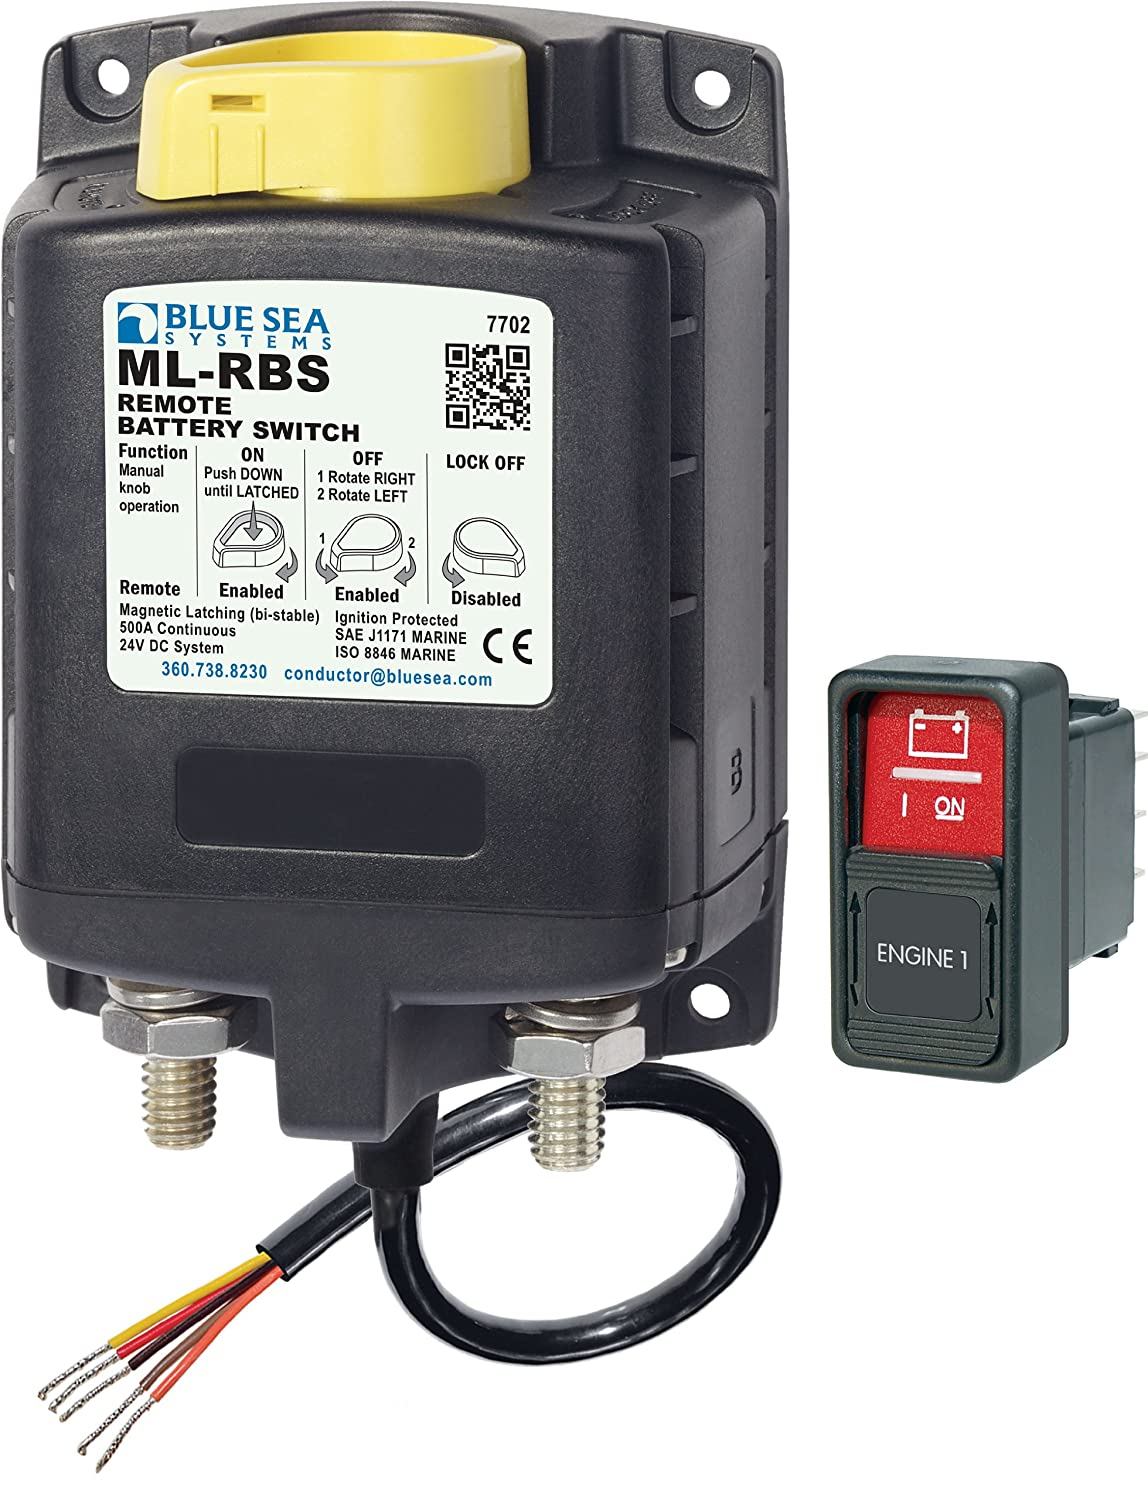 Blue Sea Systems ML-RBS 24V DC 500A Remote Battery Switch with Manual Control 7702